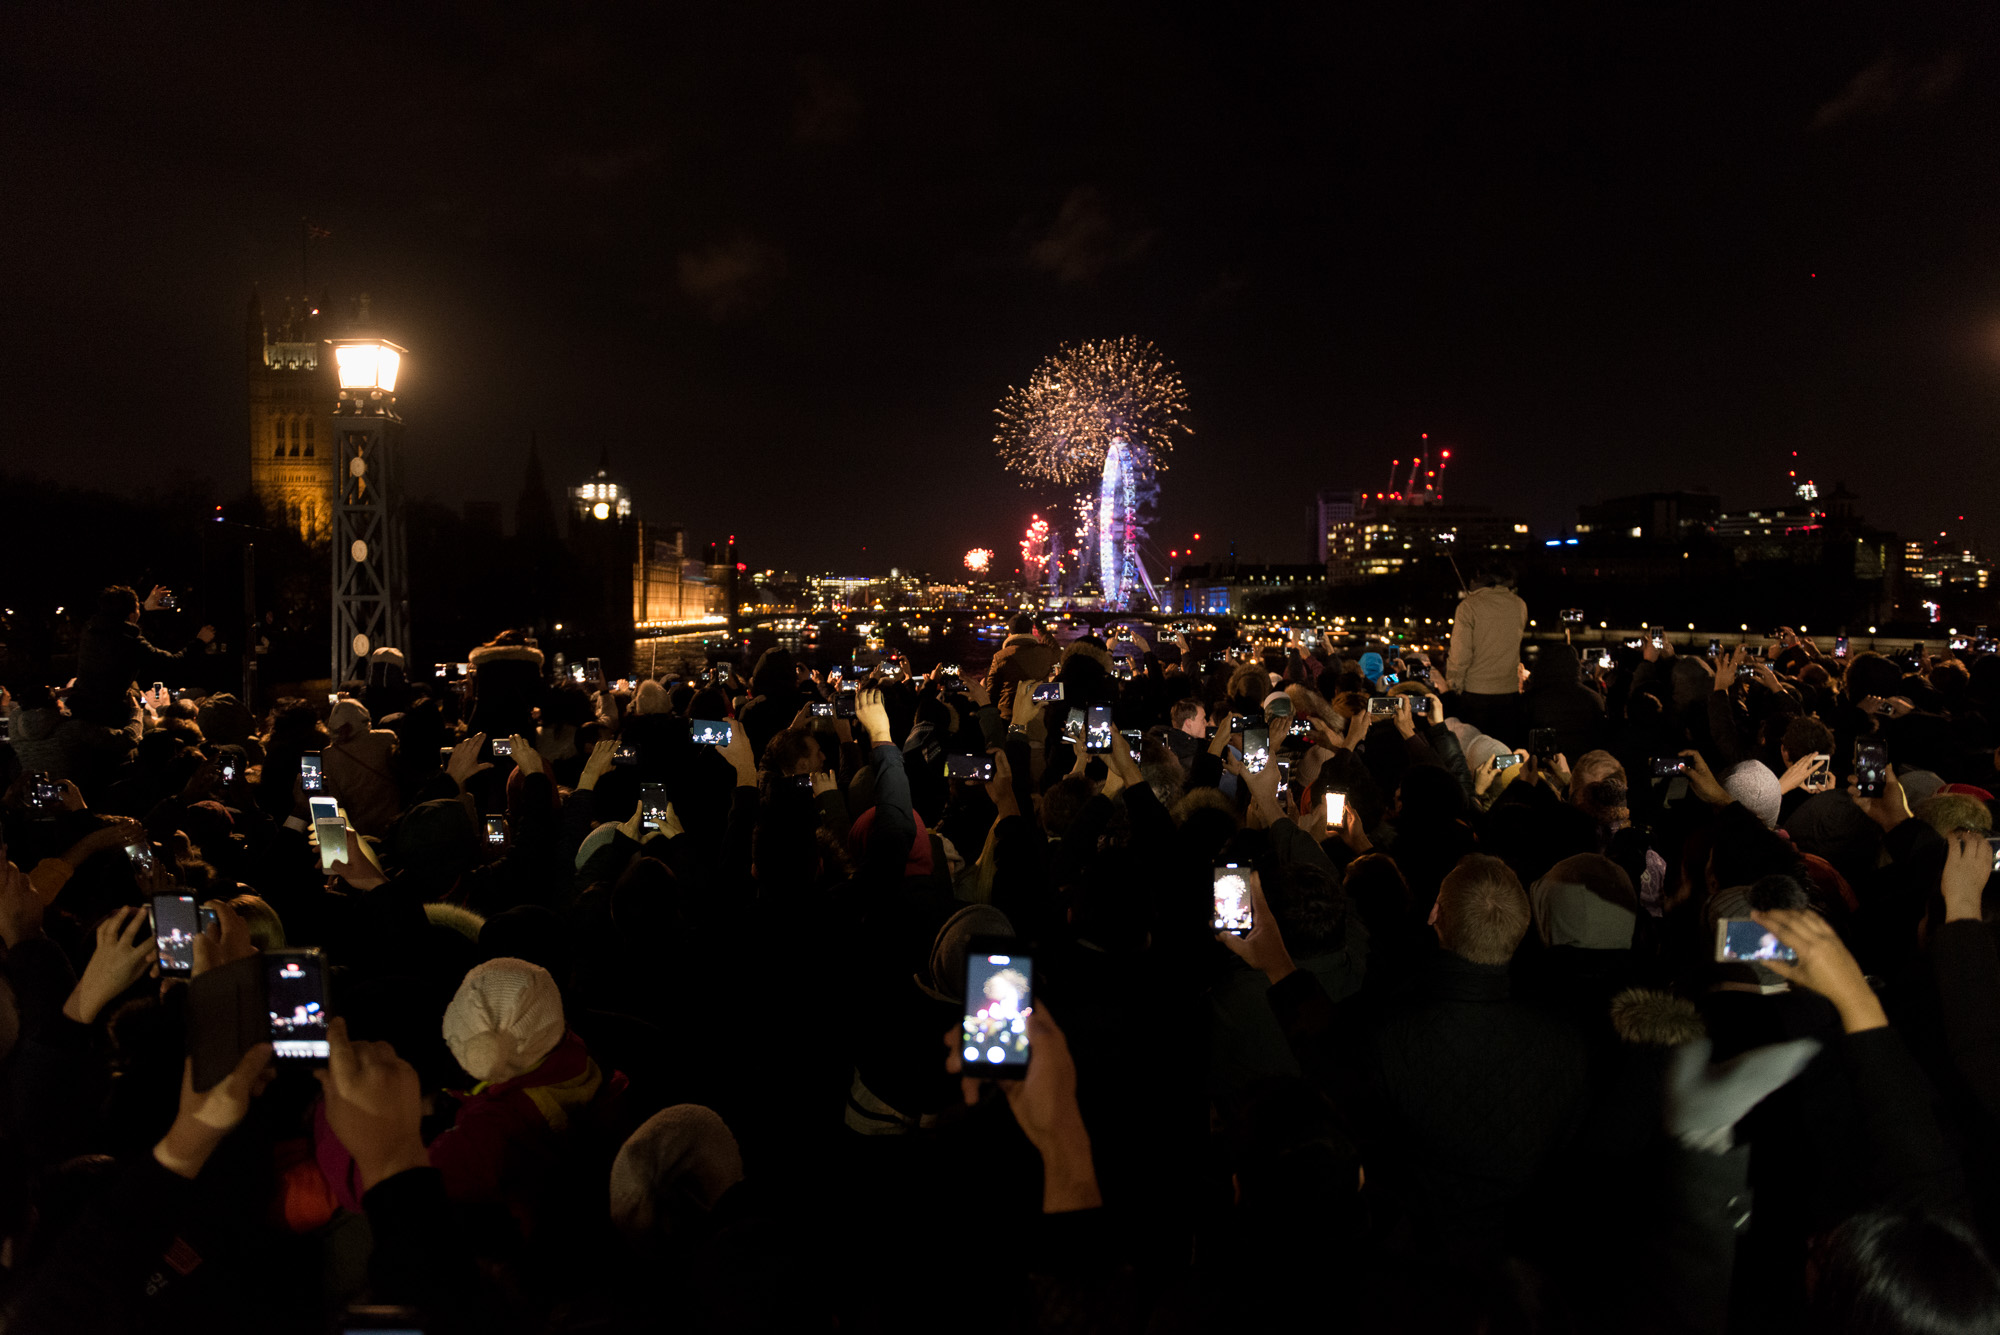 A crowd on Lambeth Bridge watch the New Years fireworks display over the London Eye. Many are holding phones in the air taking photos.